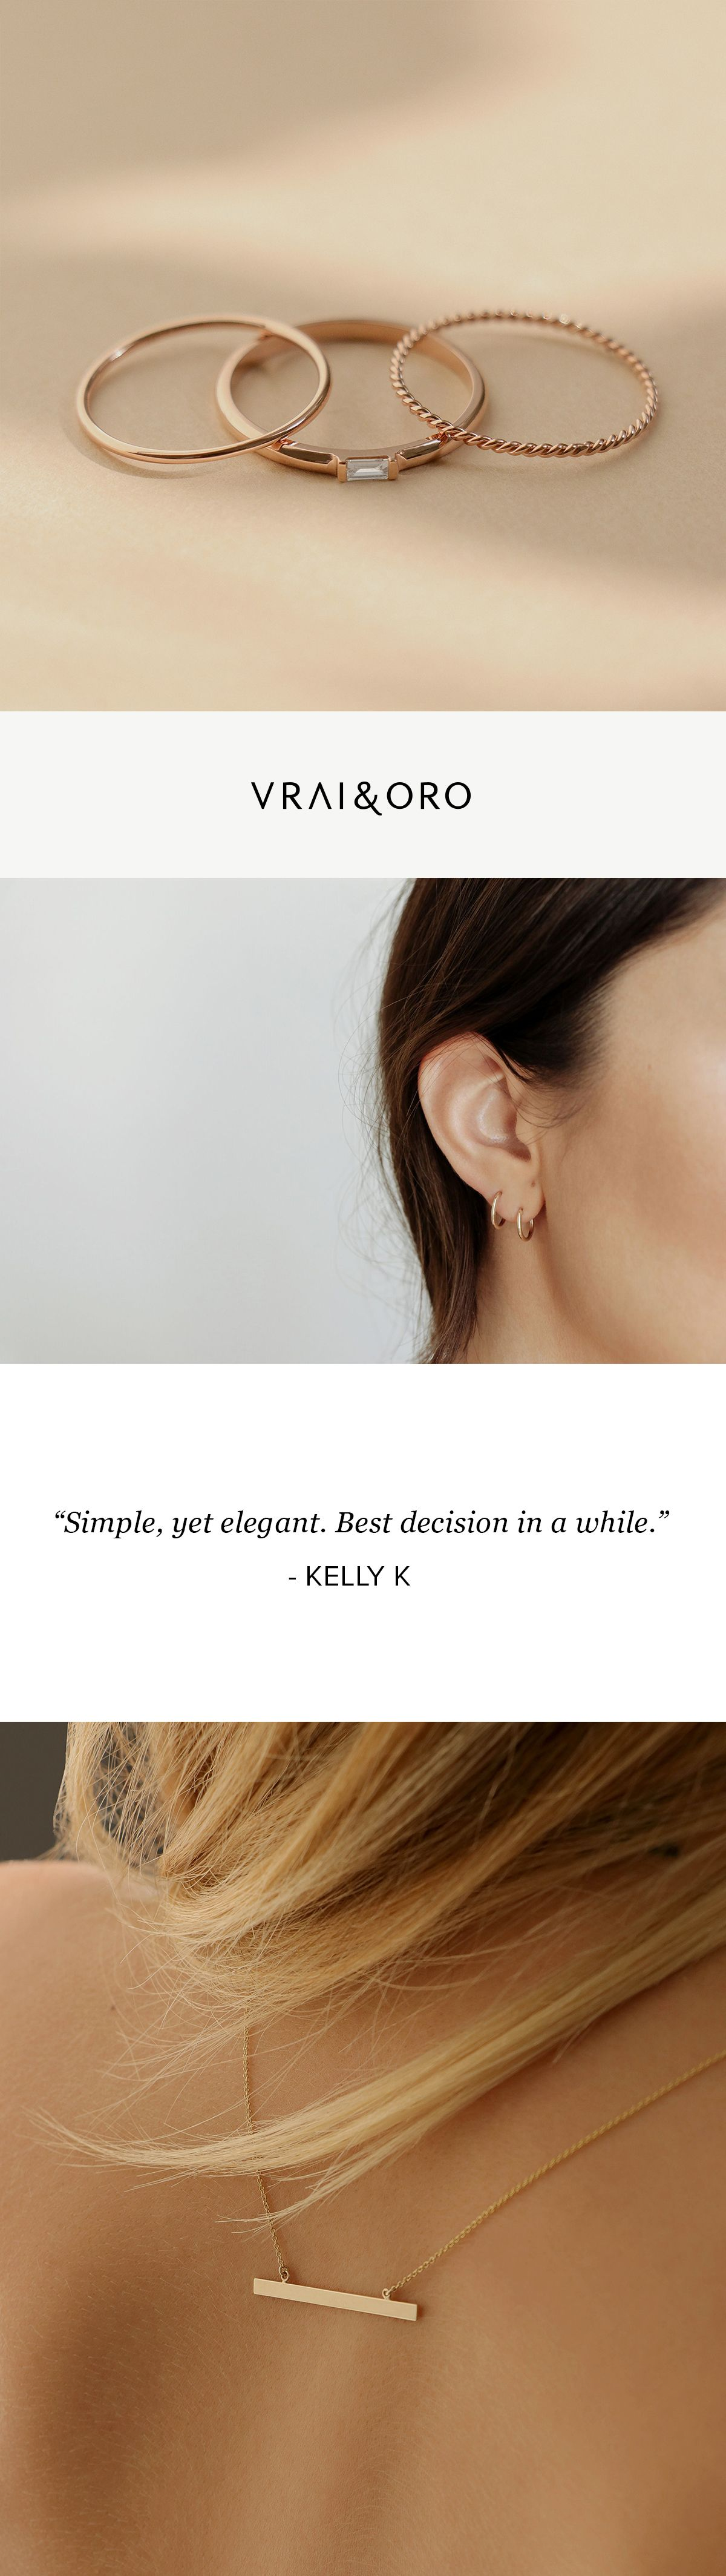 Simple design with a sustainable outlook see the jewelry line that